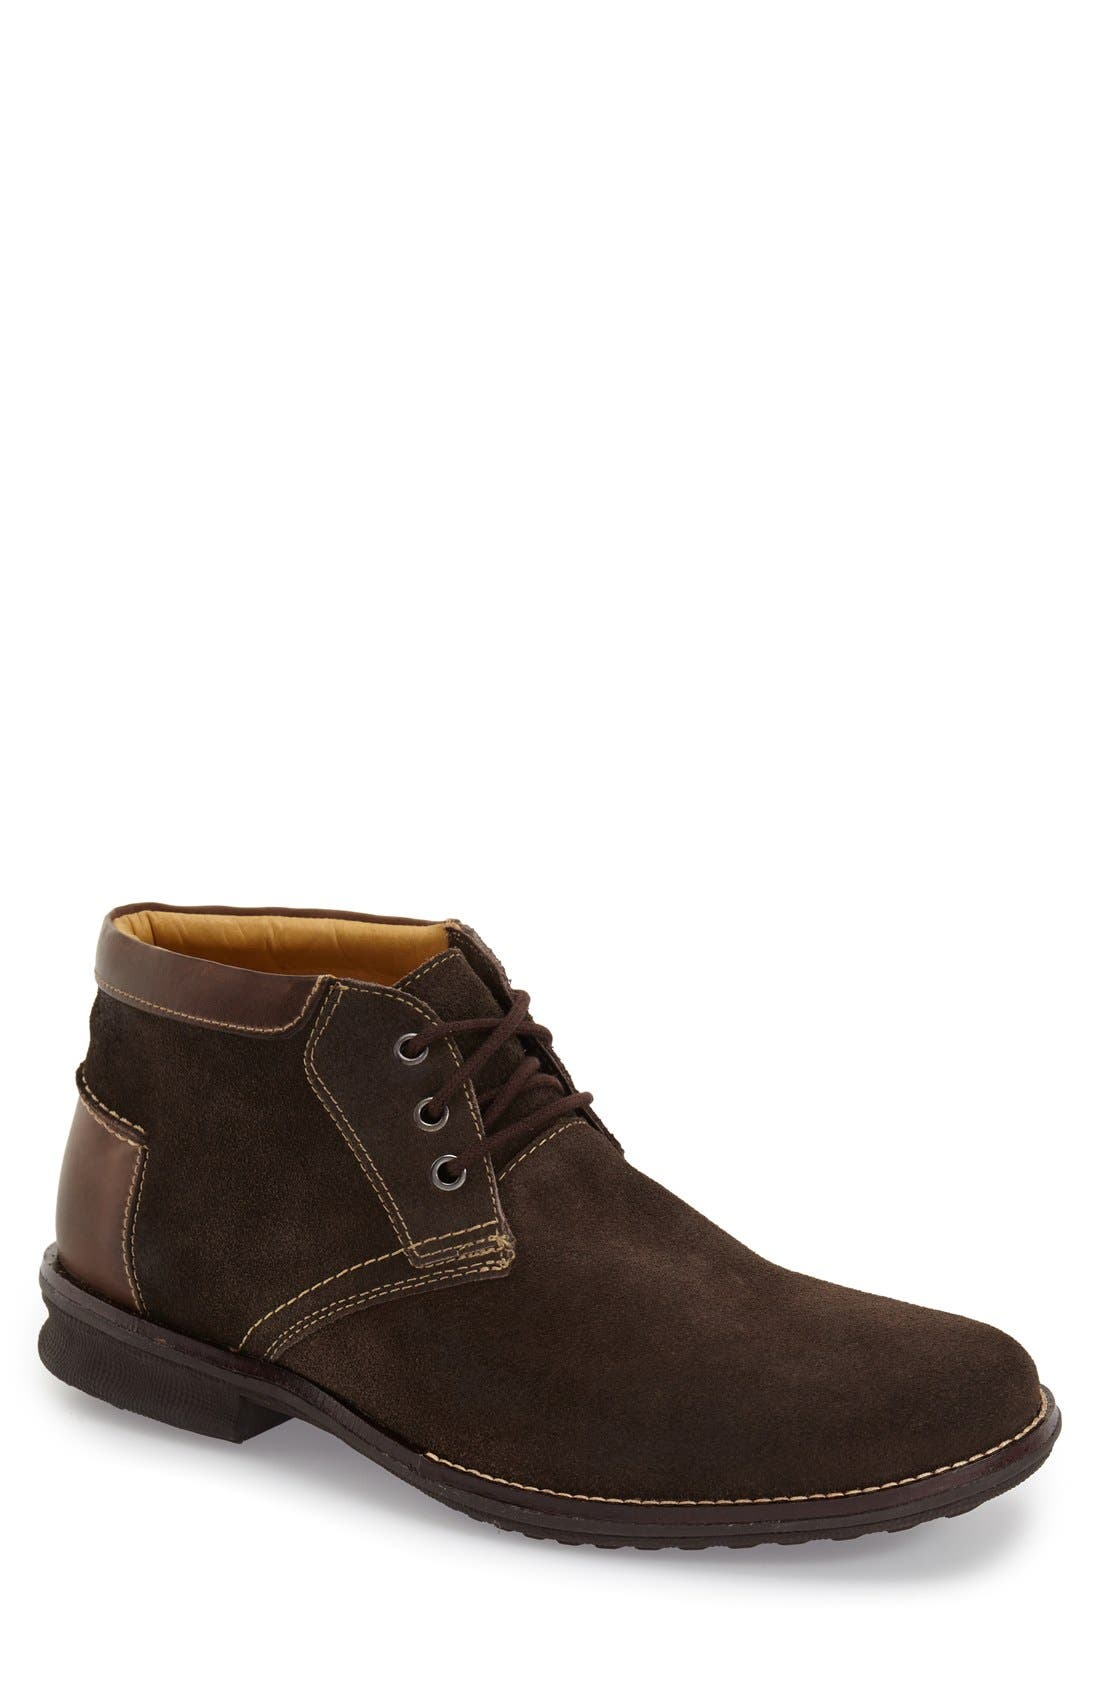 'Travis' Chukka Boot,                         Main,                         color, 200